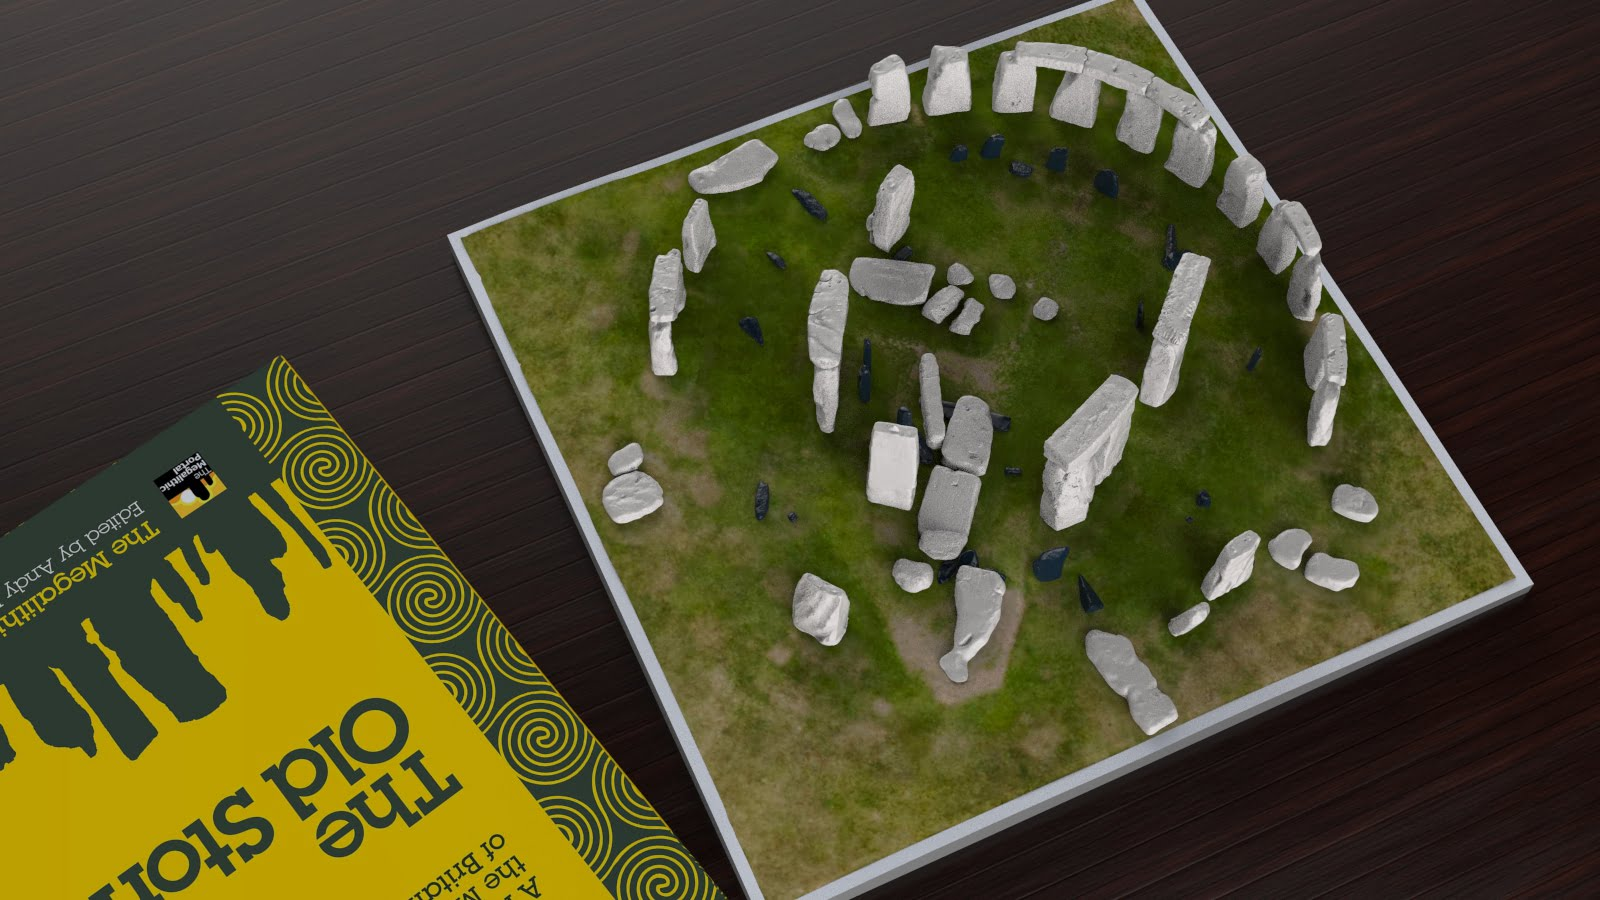 Buy Stonehenge Models: Stonehenge model replica at 200th scale on plain grass with parch marks of missing stones off white sarsens and iron blue bluestones 195 x 195 mm or 7 x 7 inches square 003  - Full set -